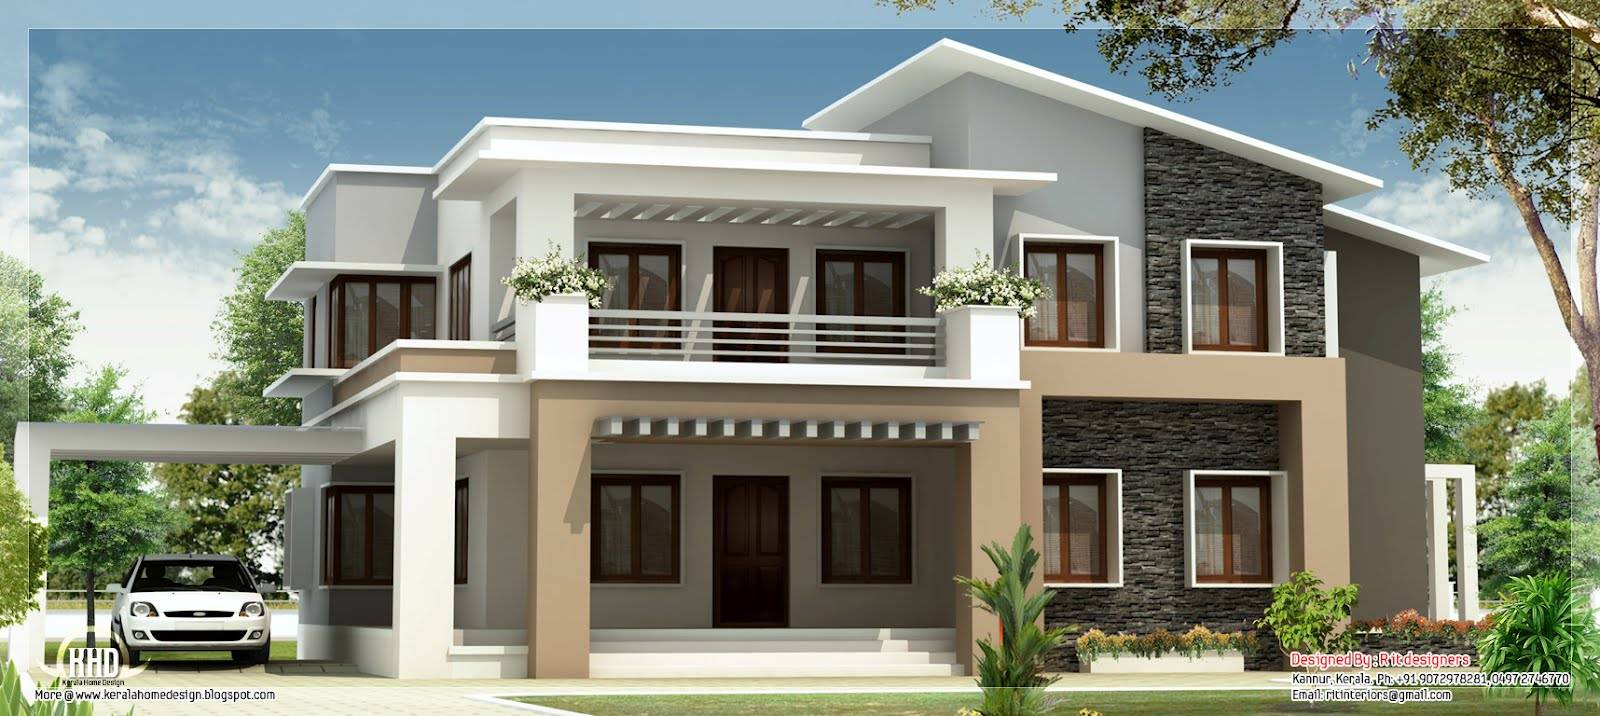 modern home designs floor plans home design ideas. architecture